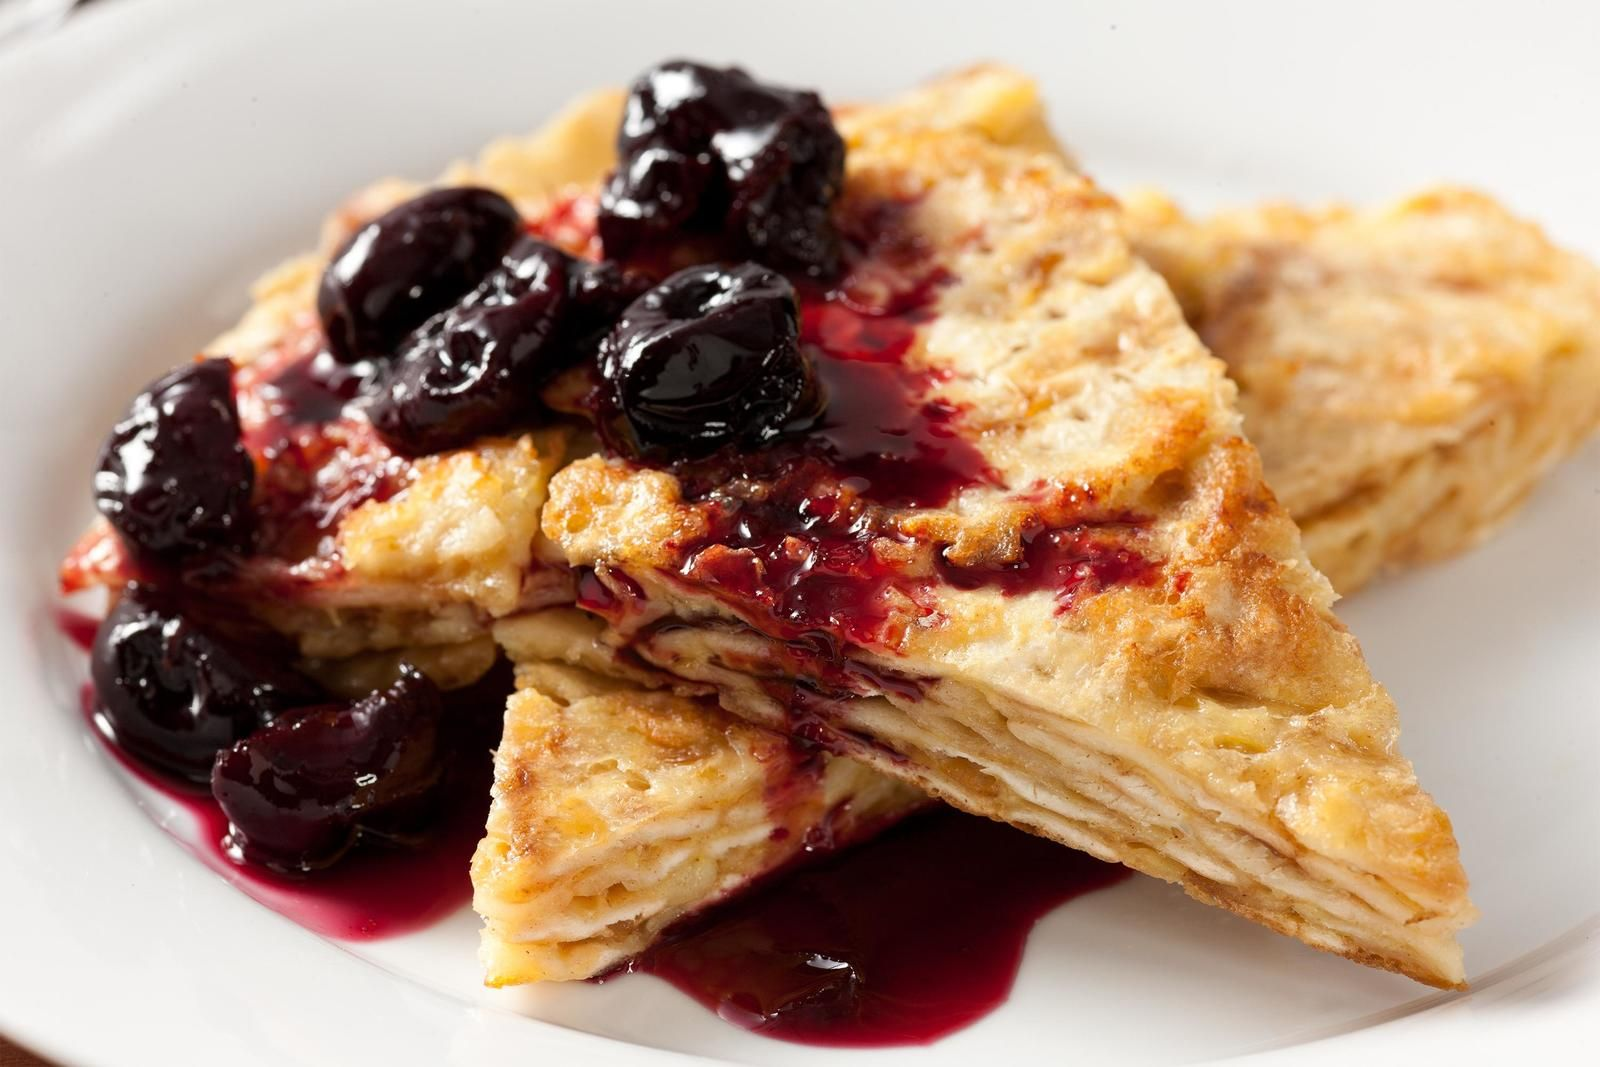 This breakfast recipe has eggy, buttery wedges of matzo brei covered in a sweet, syrupy topping of roasted cherries.